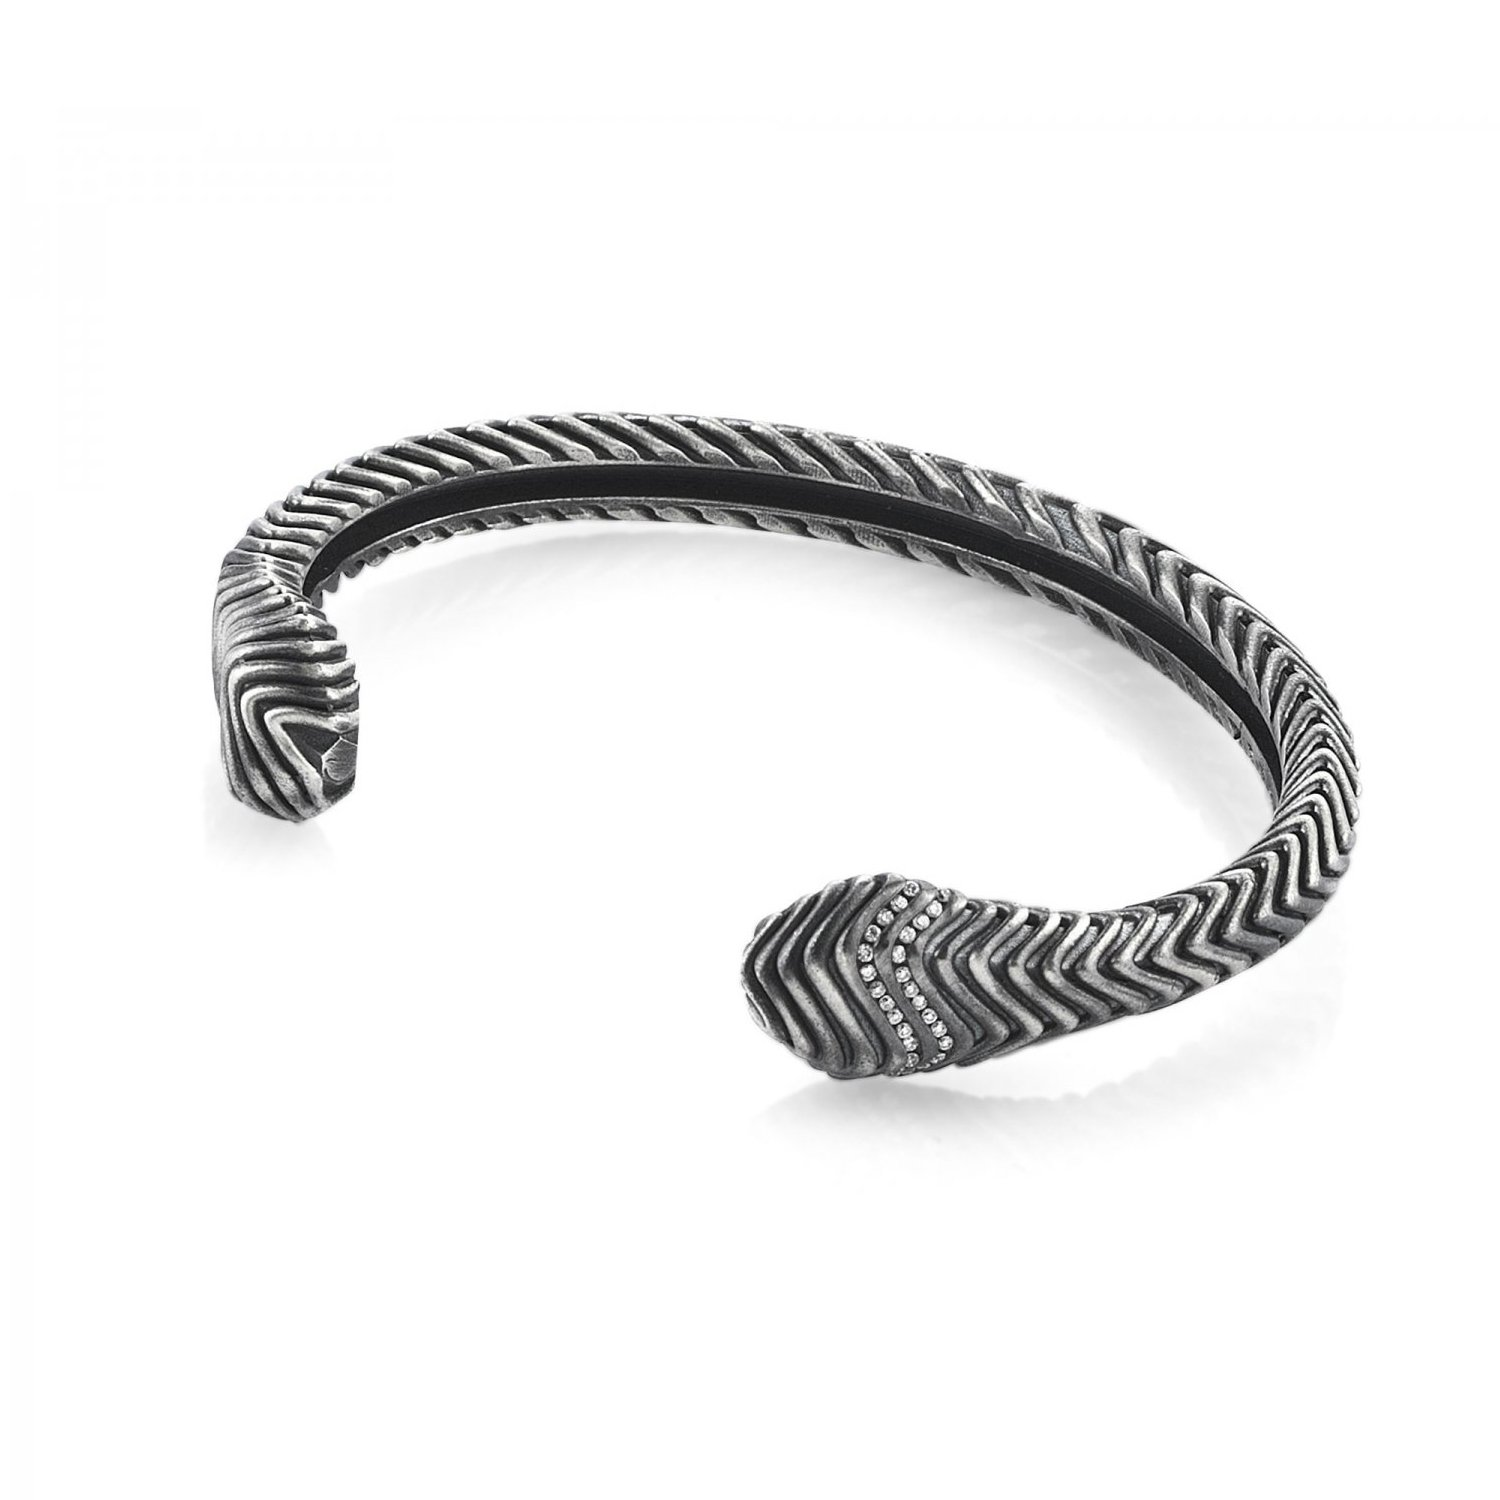 Oxidised Silver Serpi Cuff with Diamonds